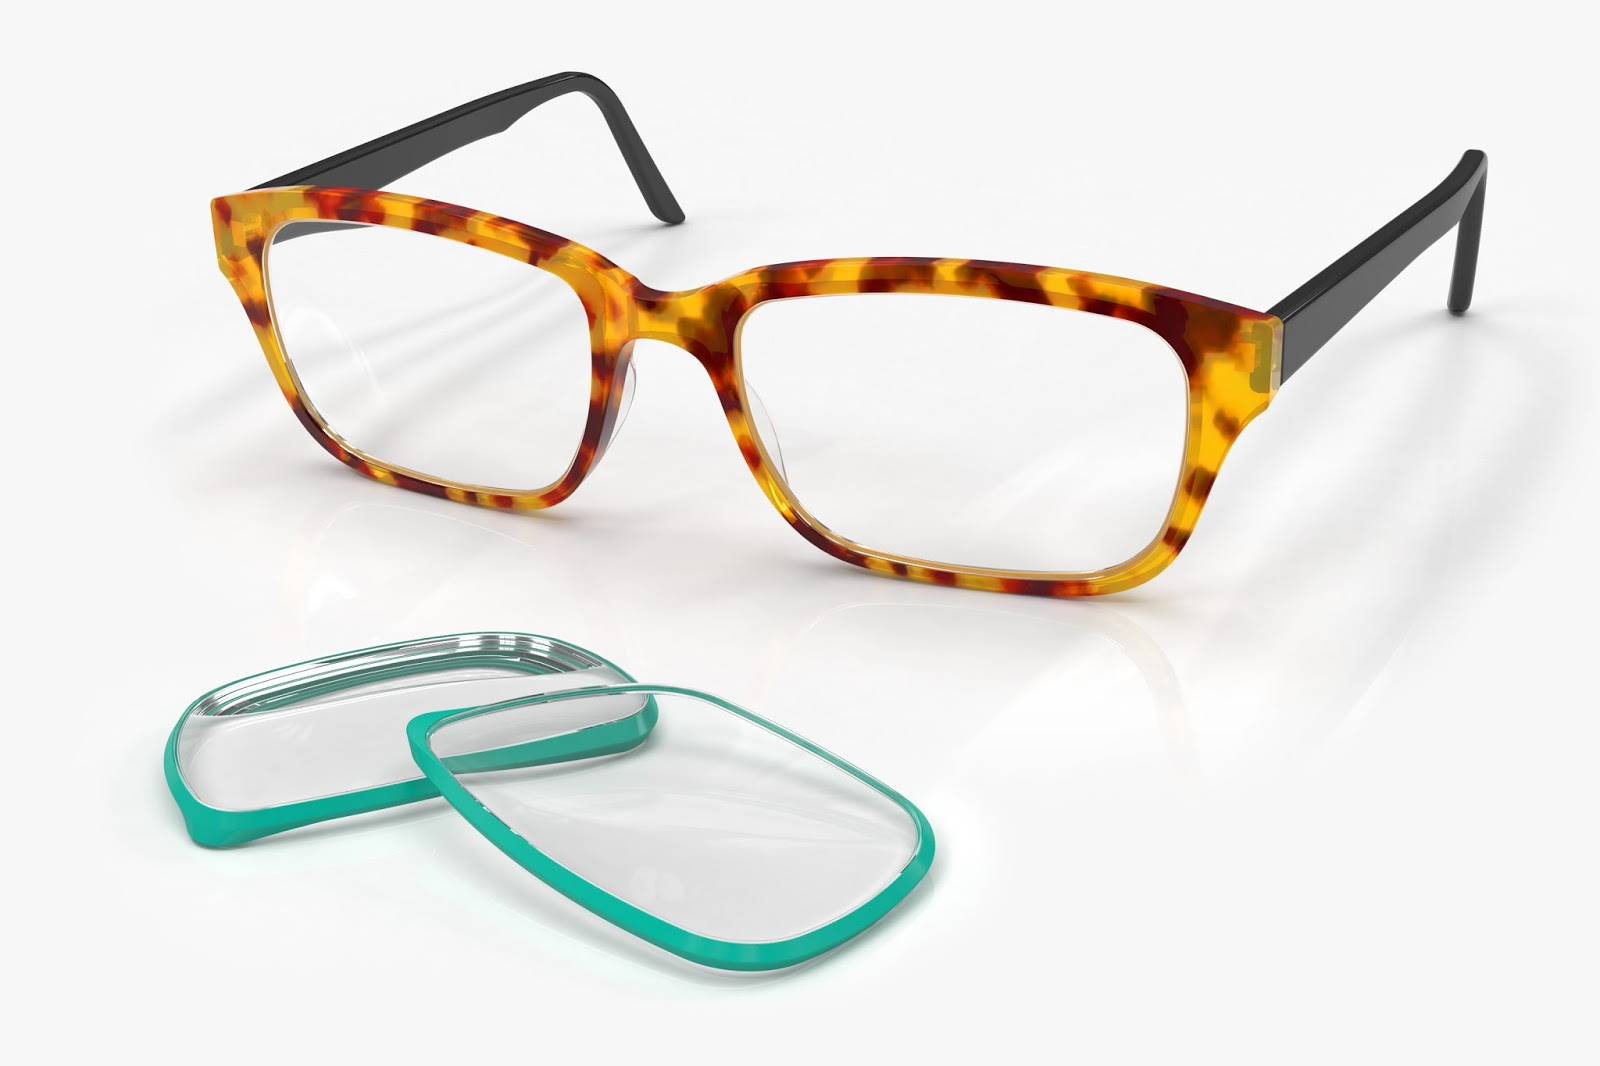 Changeable Glasses Frame : The Well-Appointed Catwalk: Interchangeable Frames by Frameri